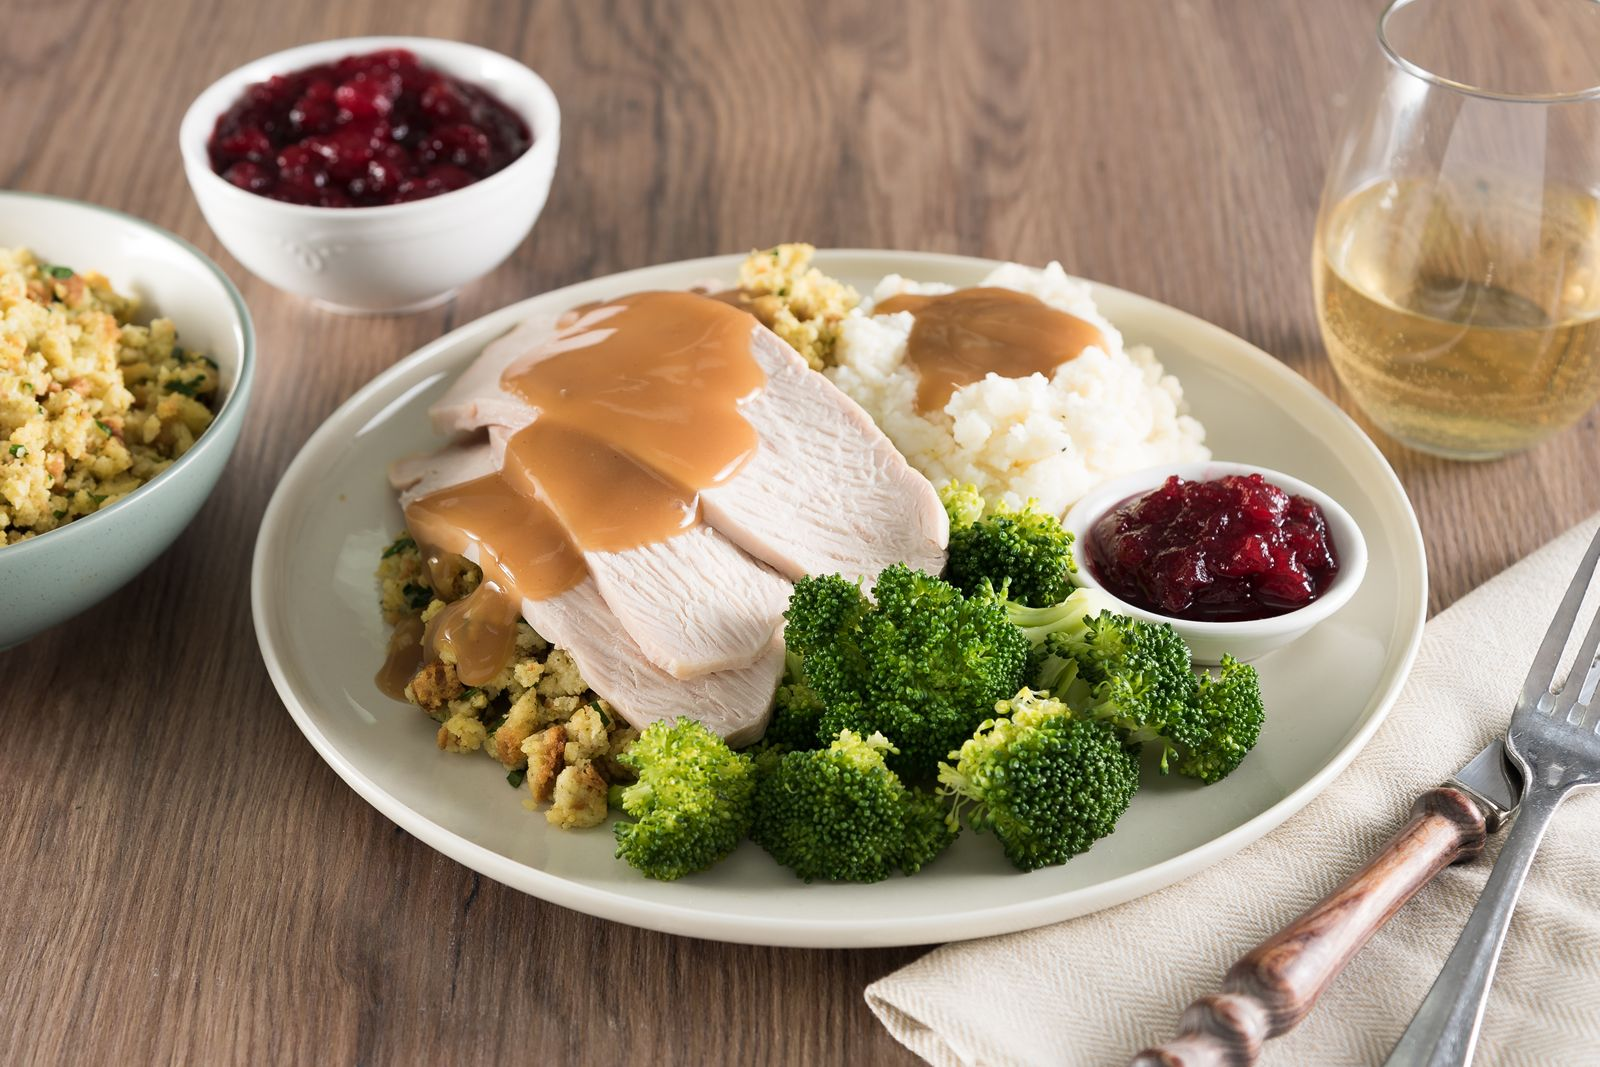 TooJay's Deli Traditional Turkey Dinner